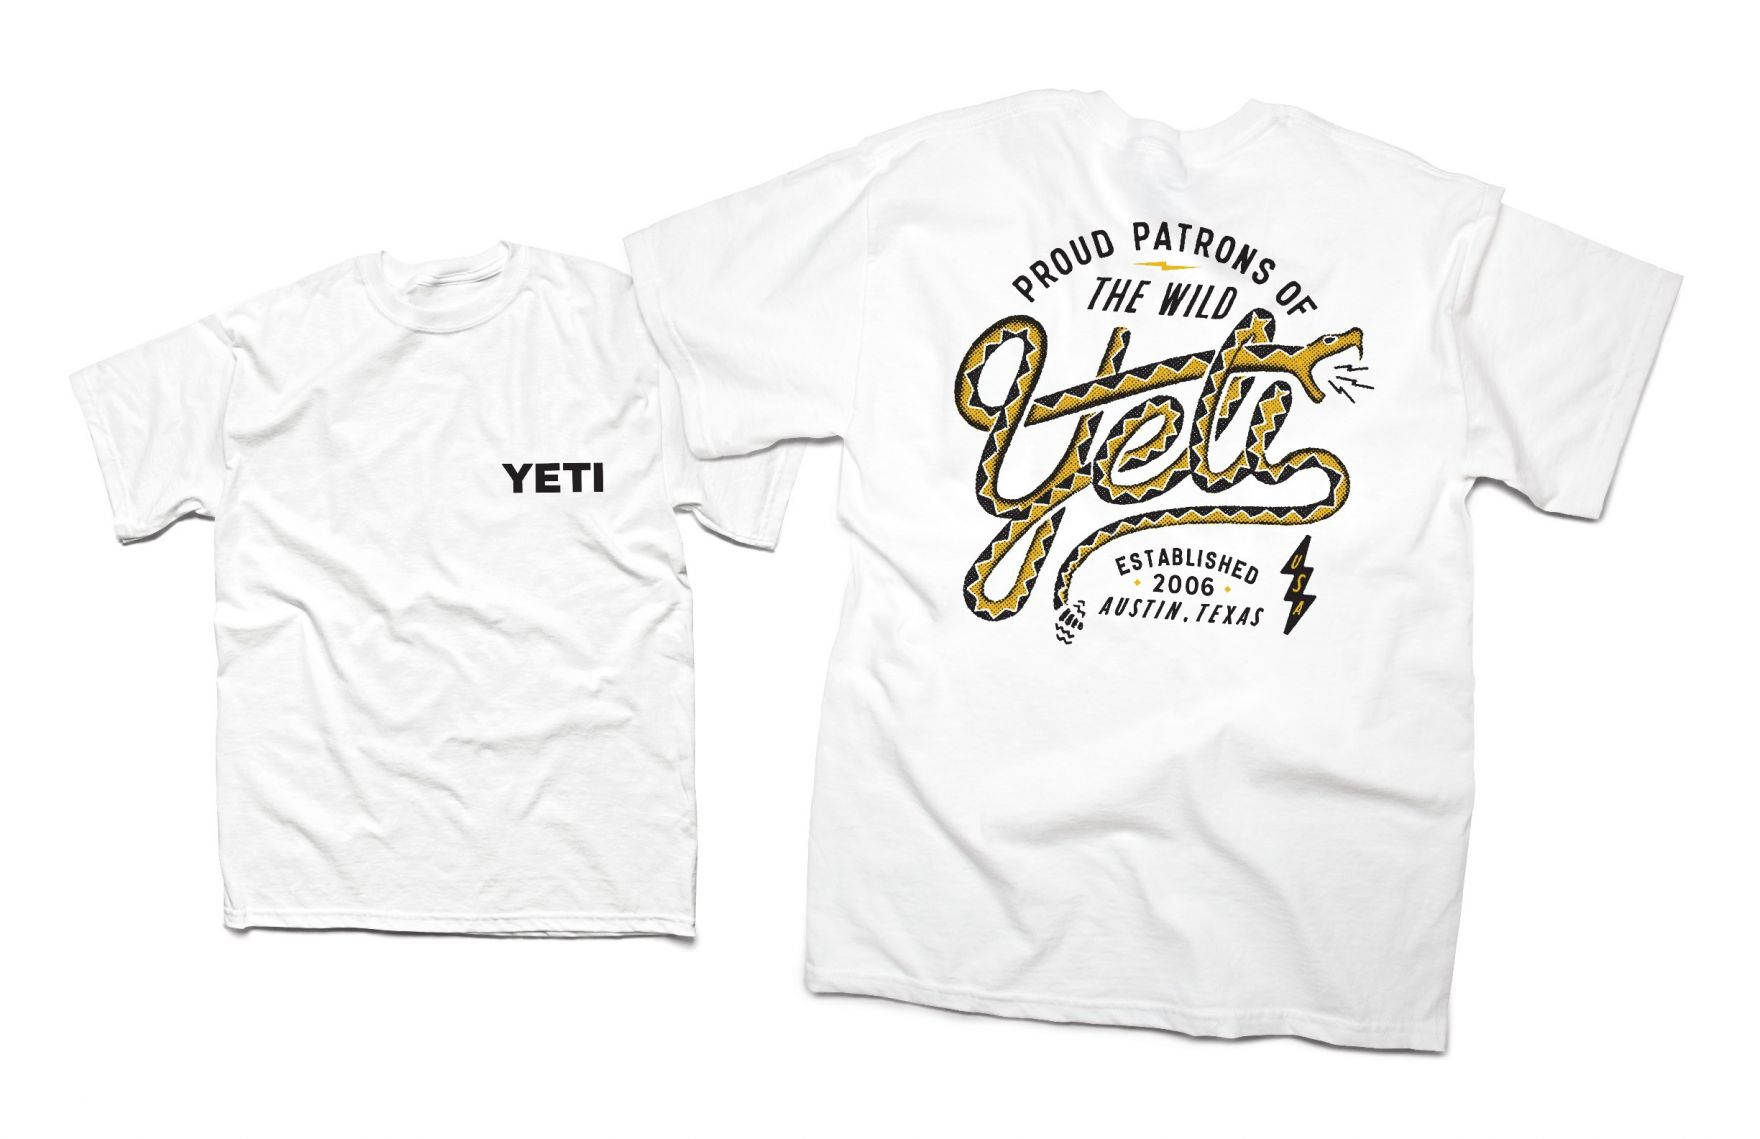 YETI-Screaming-Snake-Shirt-01-2-12